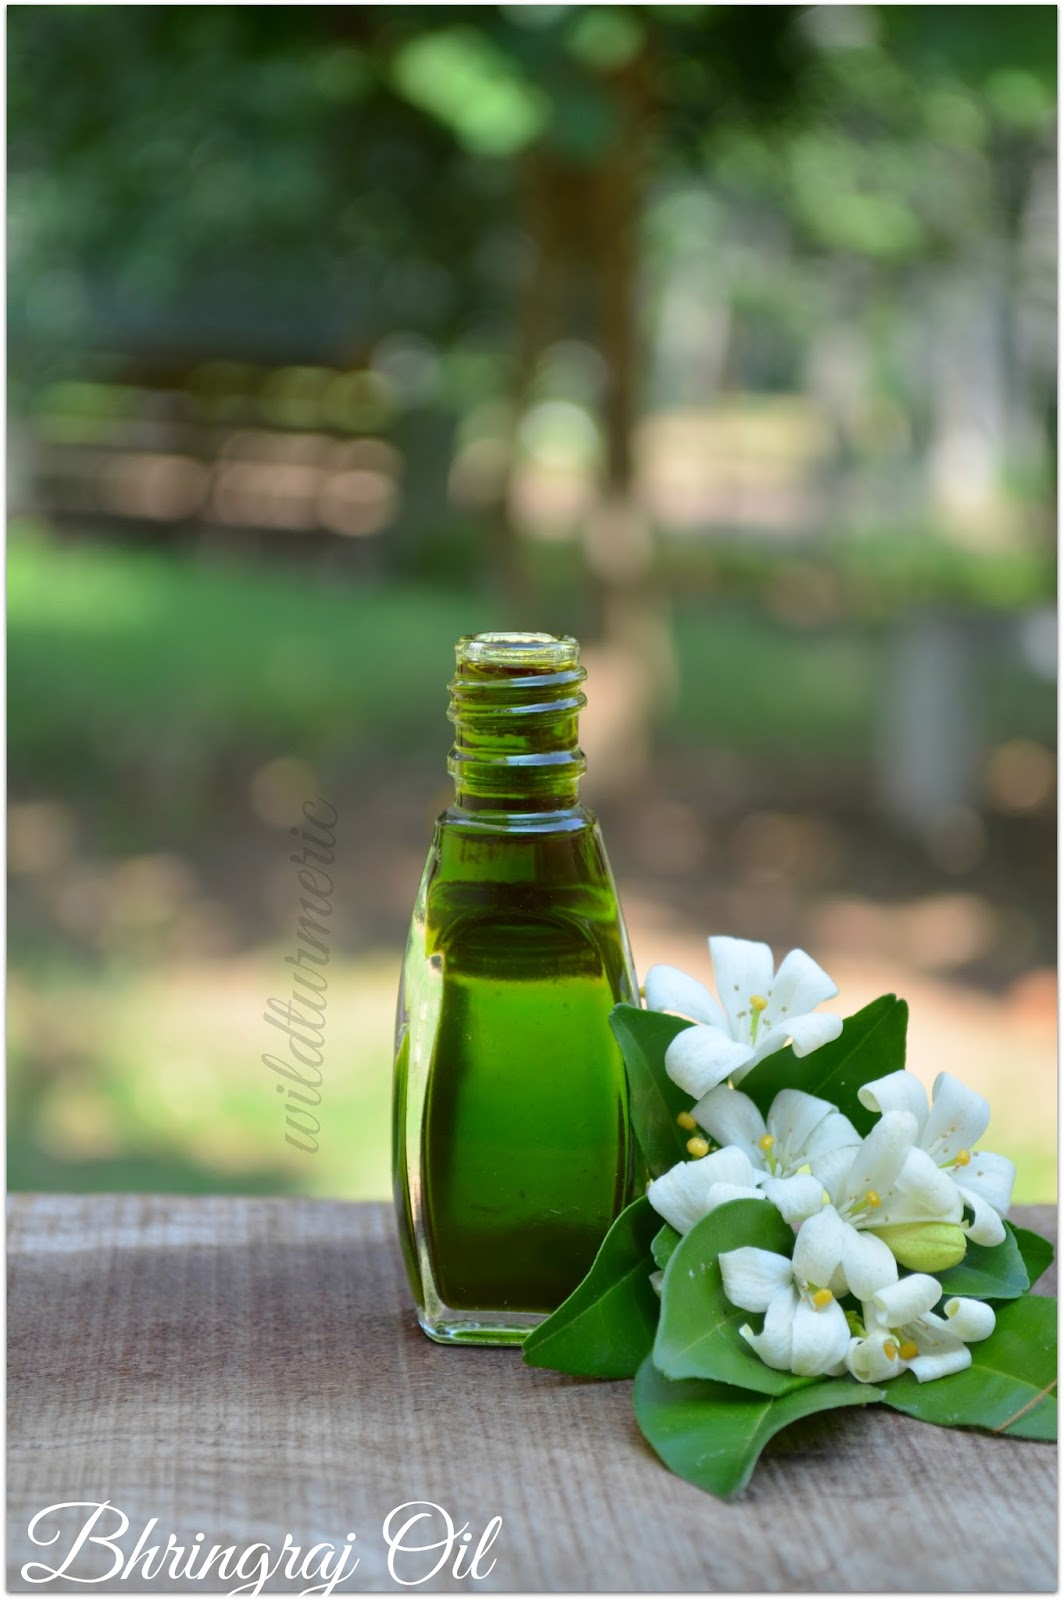 10 Benefits & Uses Of Bhringraj Oil & Mahabhringraj Oil For Hair Growth